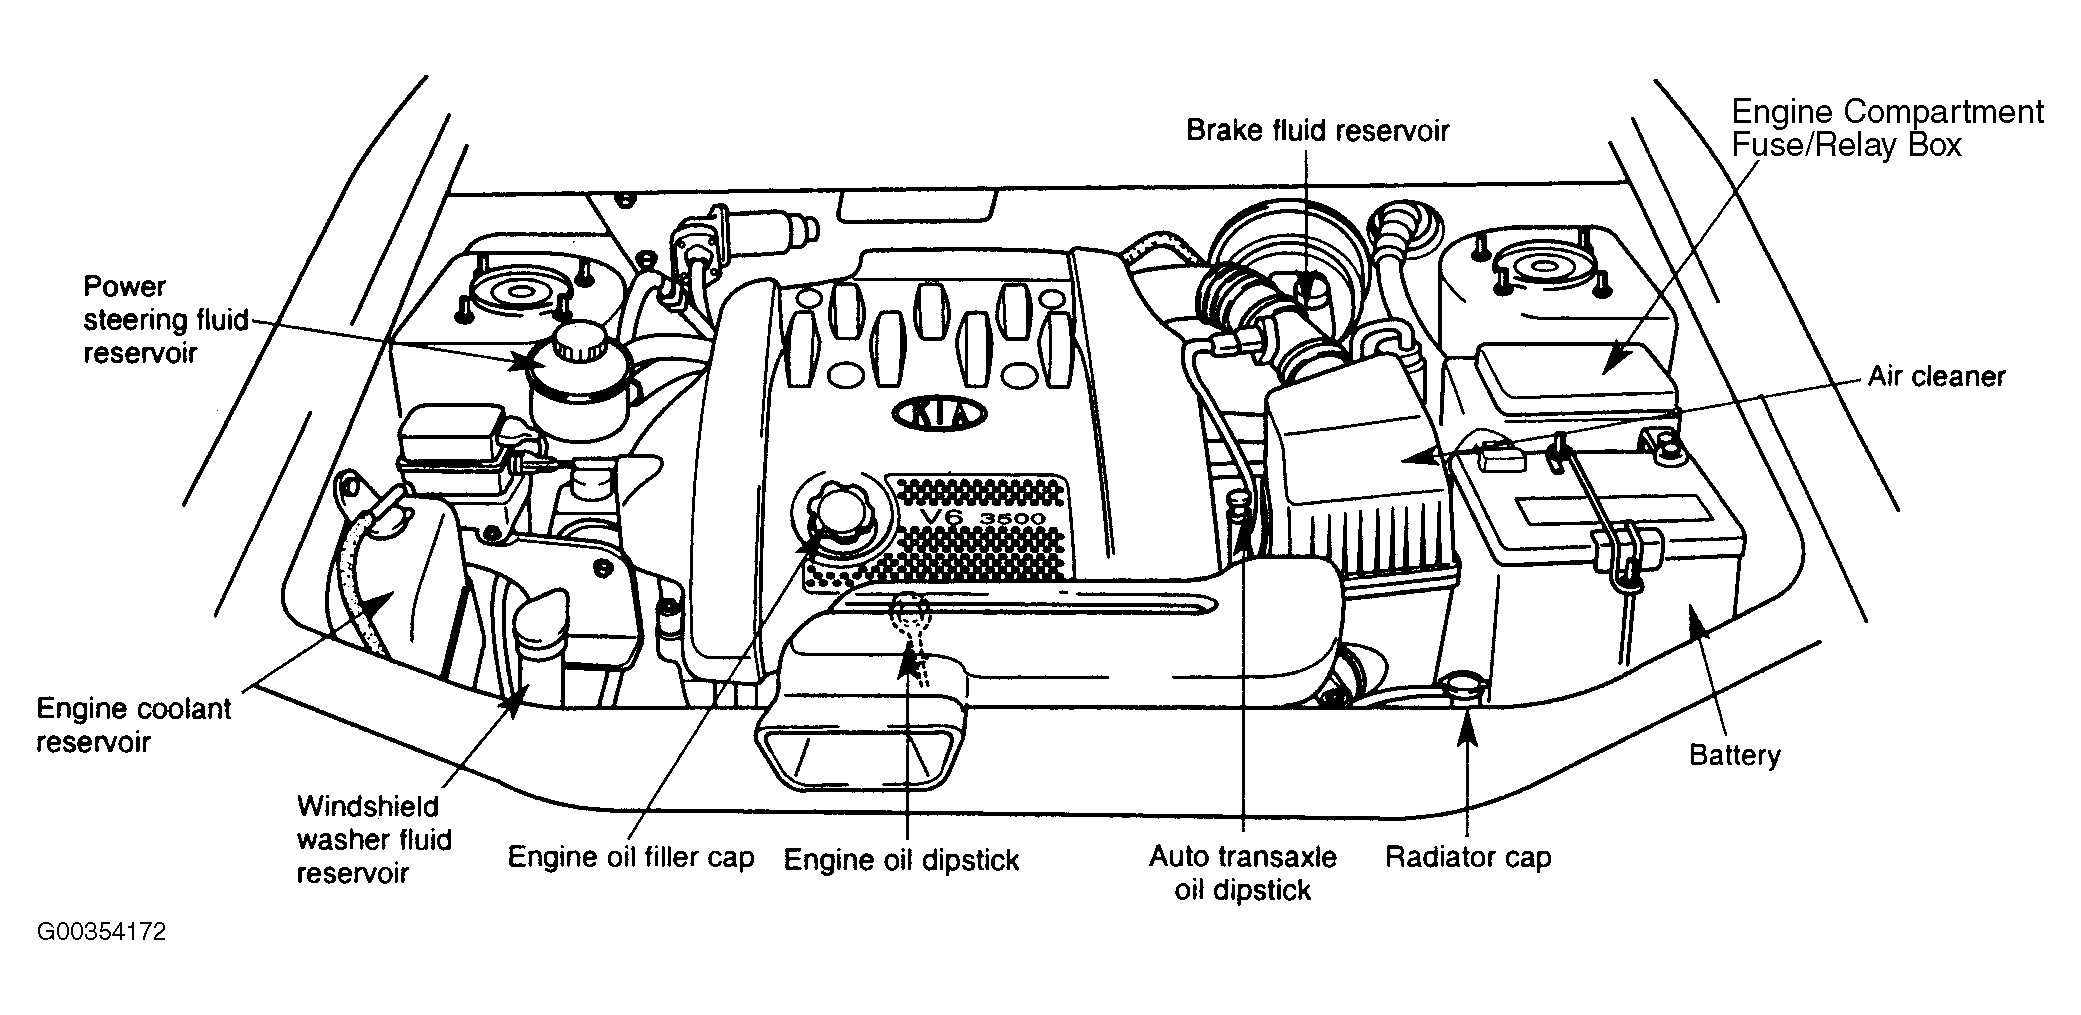 2002 Kia Sedona Engine Diagram | My Wiring DIagram